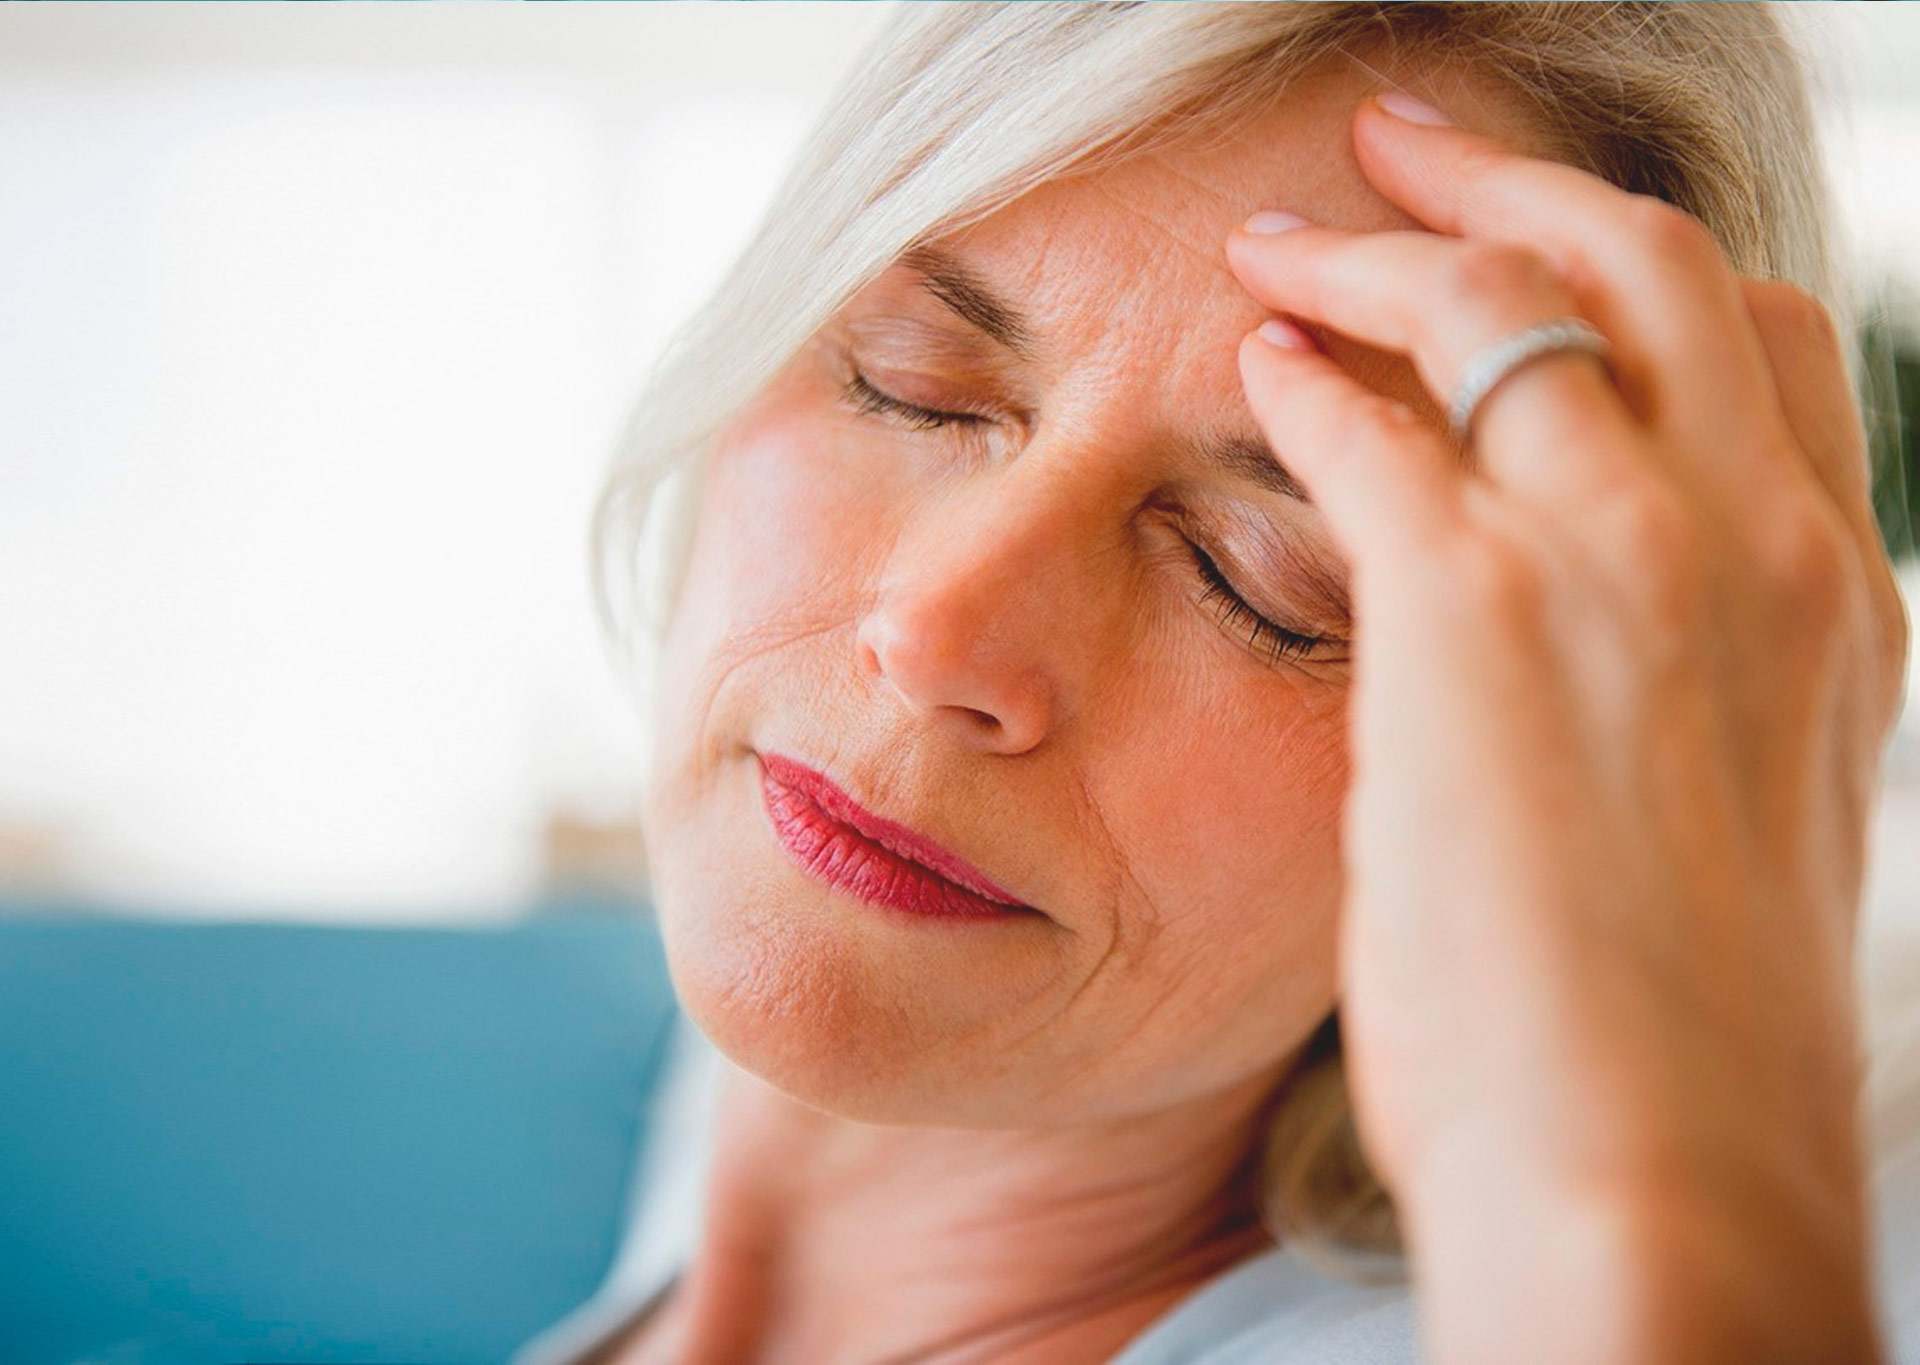 woman-with-migraine-headache-organicnewsroom